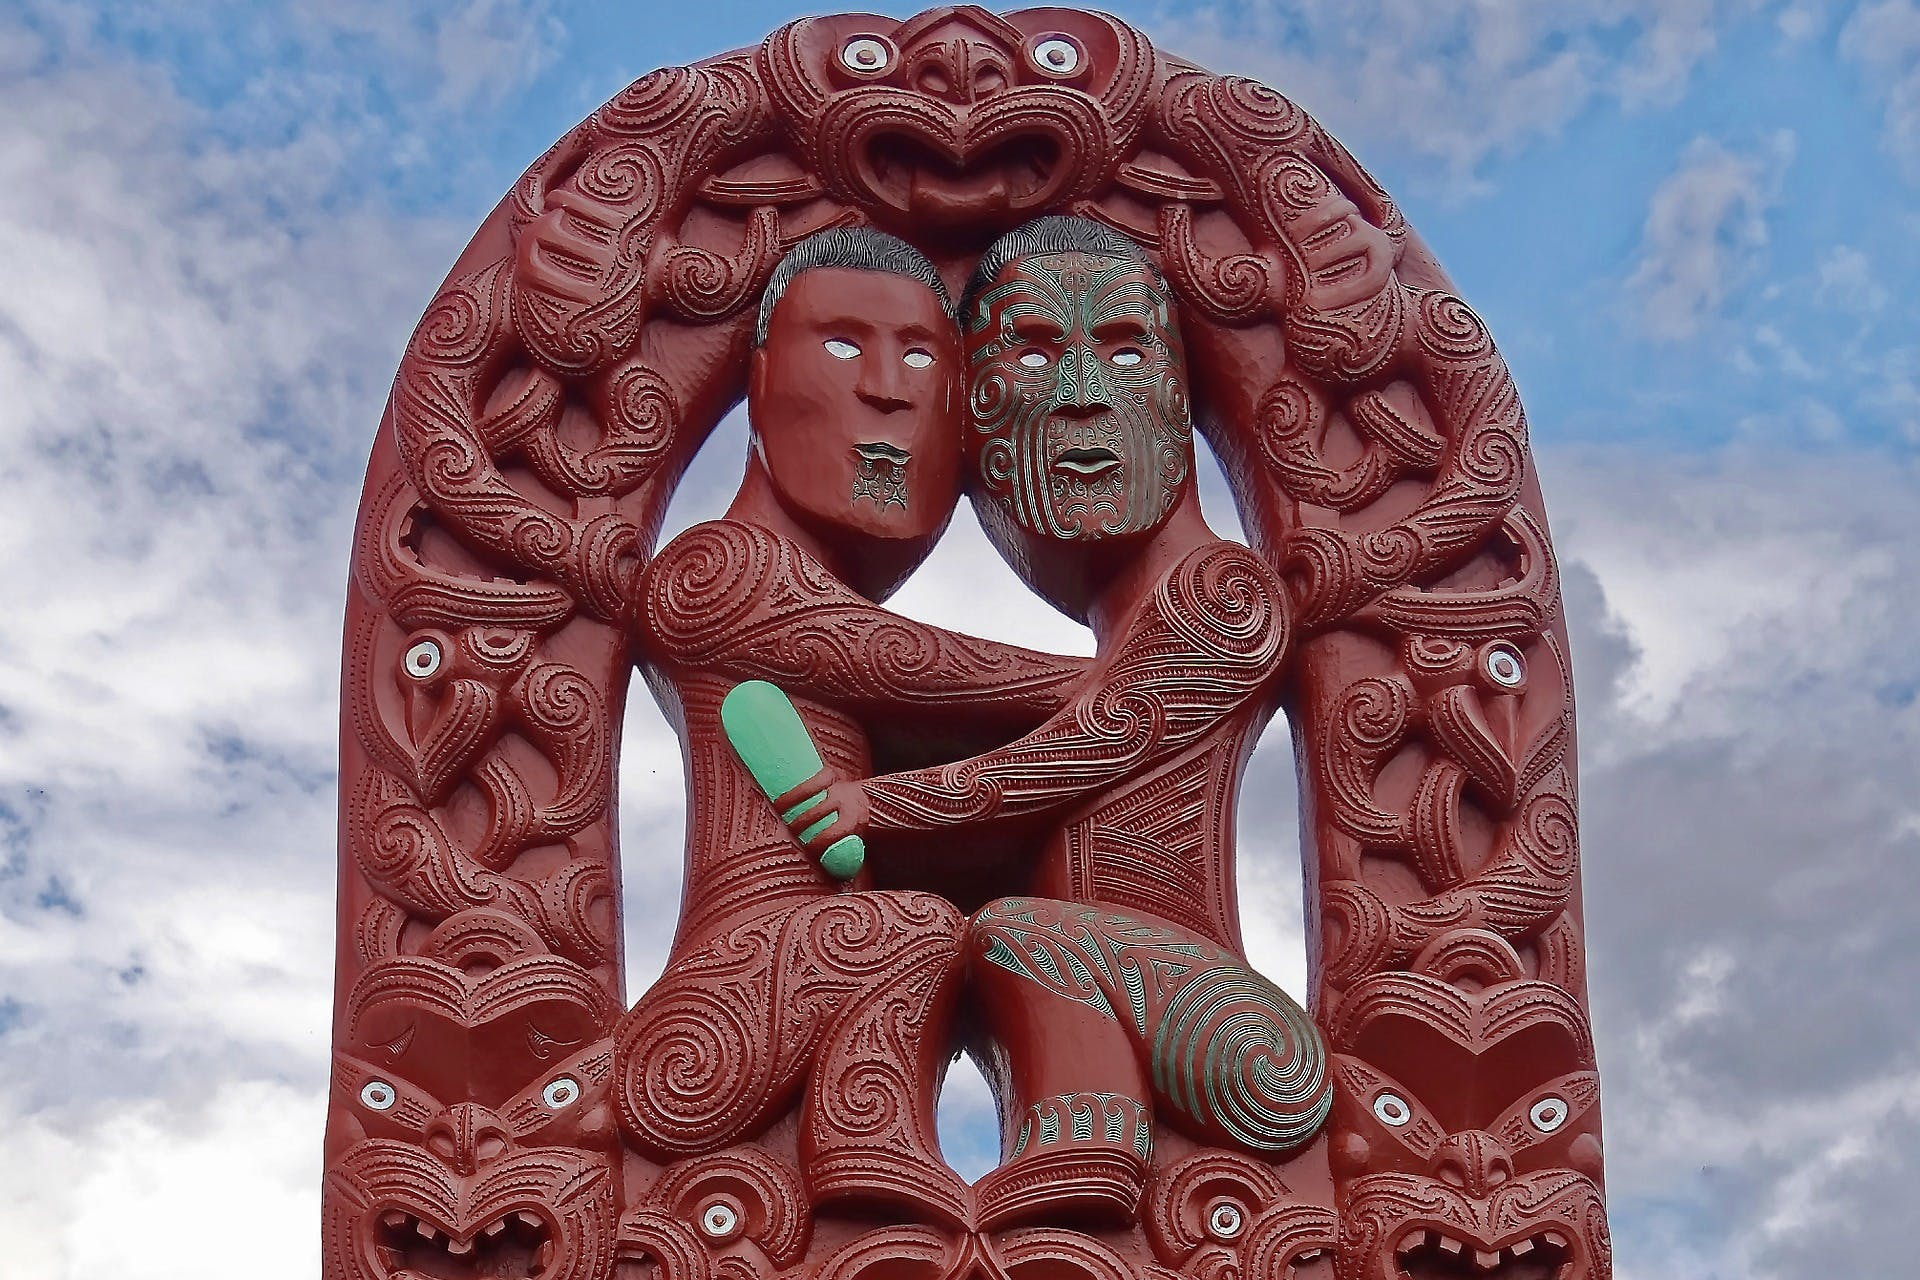 Famous Maori People: 10+ Ways To Experience Maori Culture In New Zealand